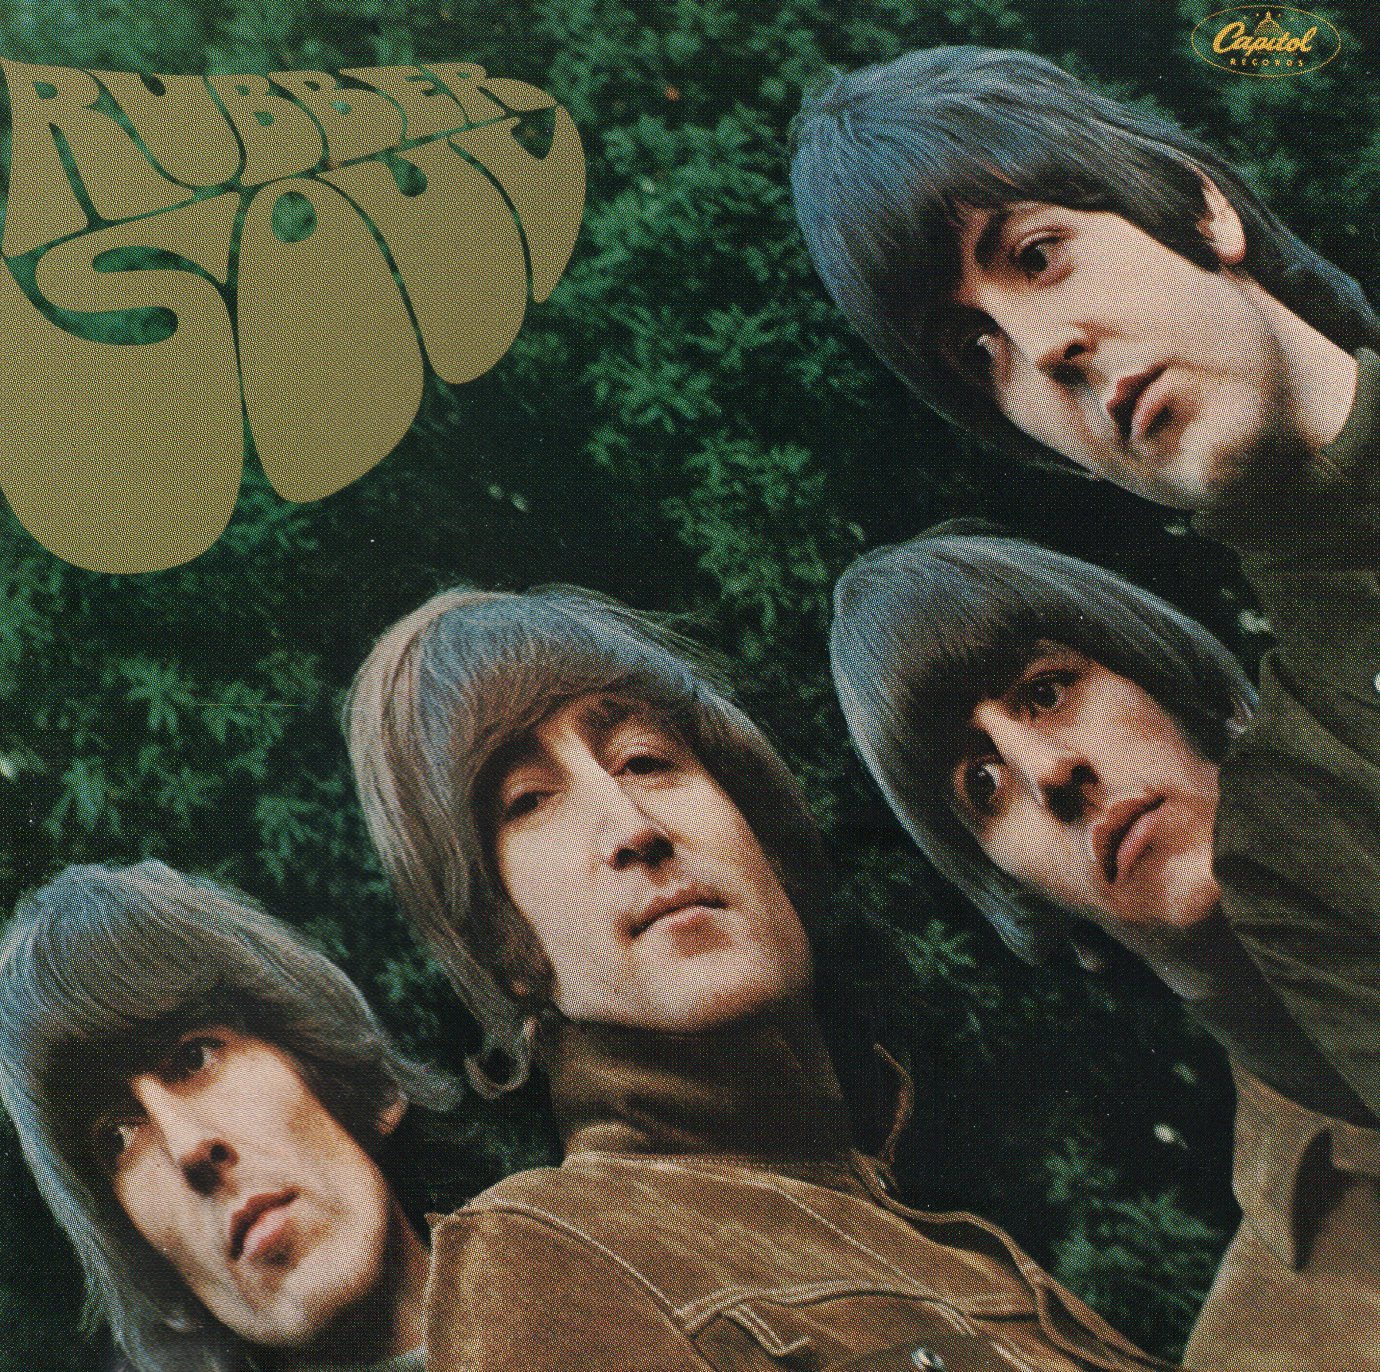 """Rubber Soul"" The Beatles"